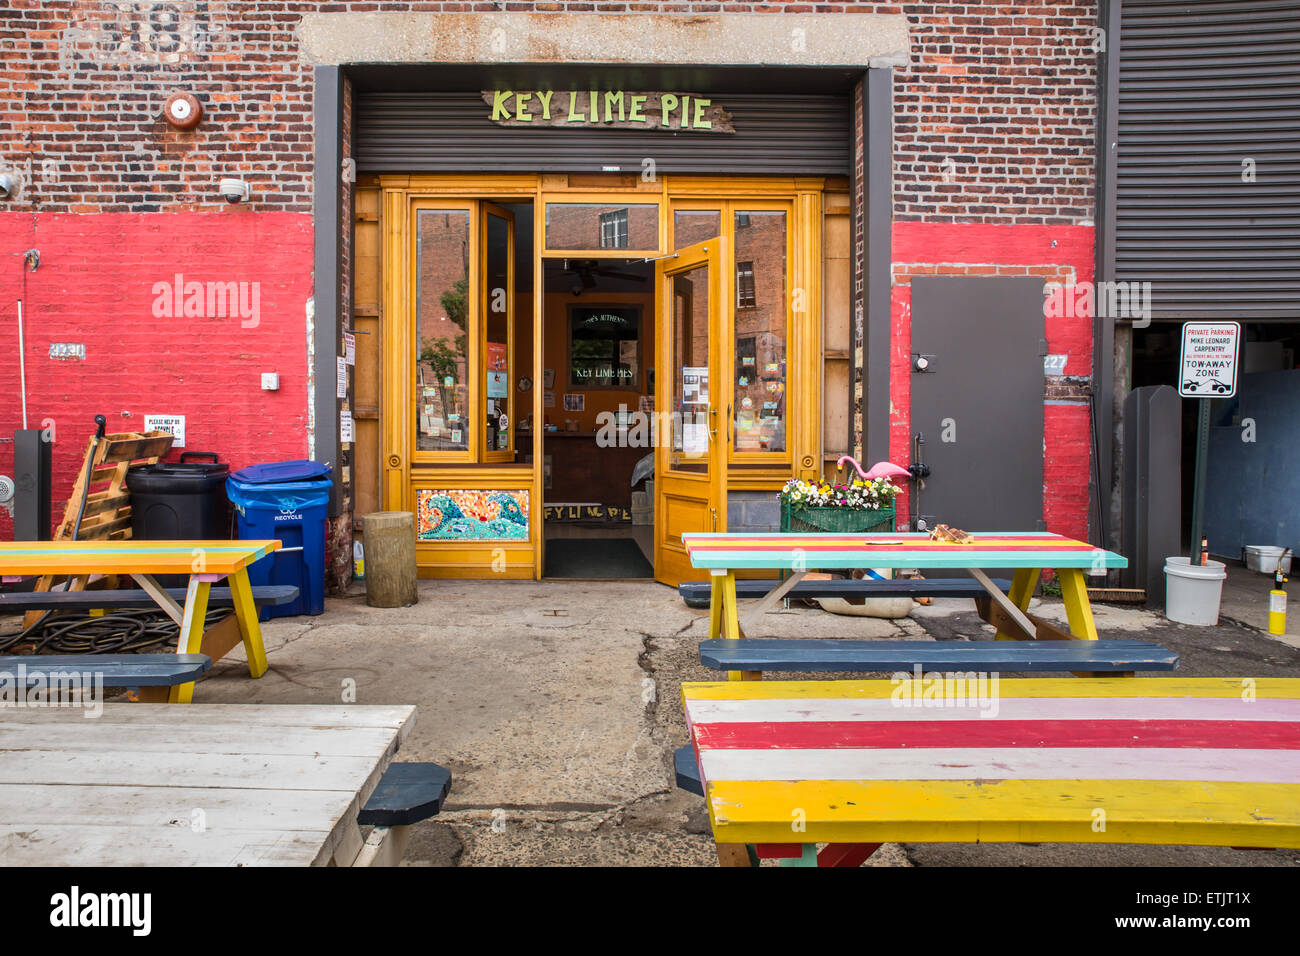 Red Hook Stock Photos & Red Hook Stock Images - Alamy